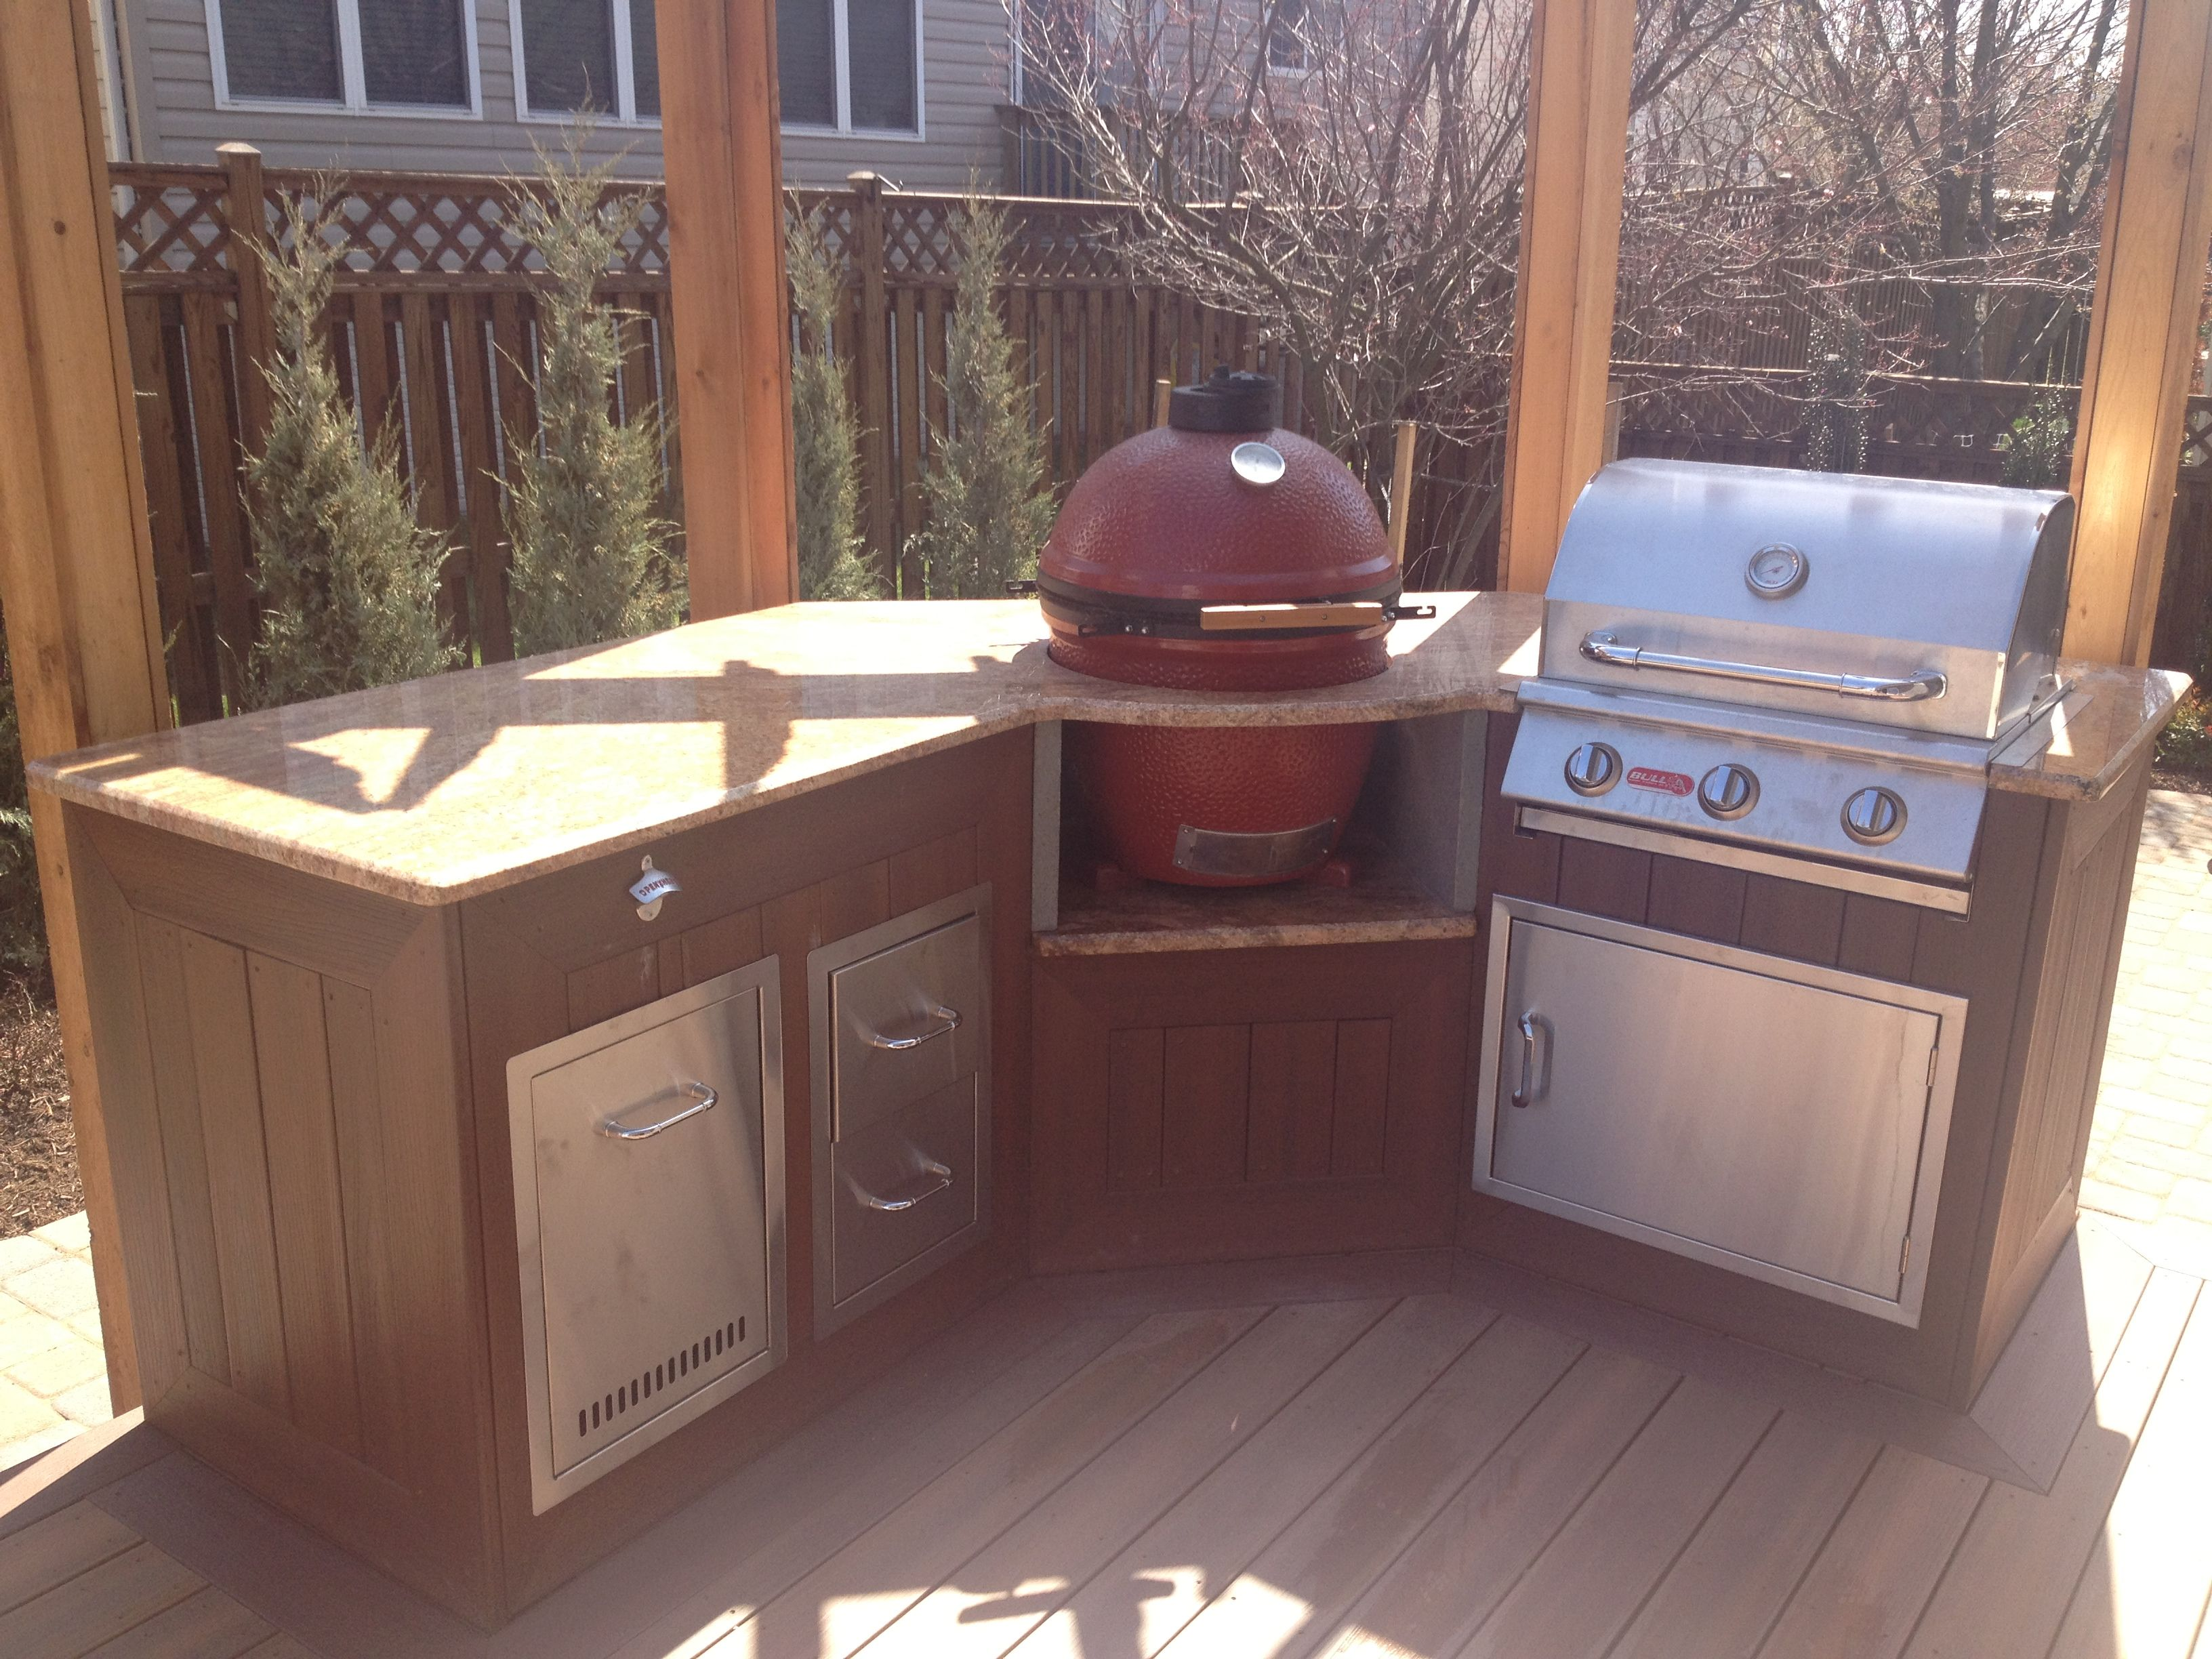 outdoor kitchen millersville md new deck with custom pergola www sharpercut com on outdoor kitchen on deck id=36482